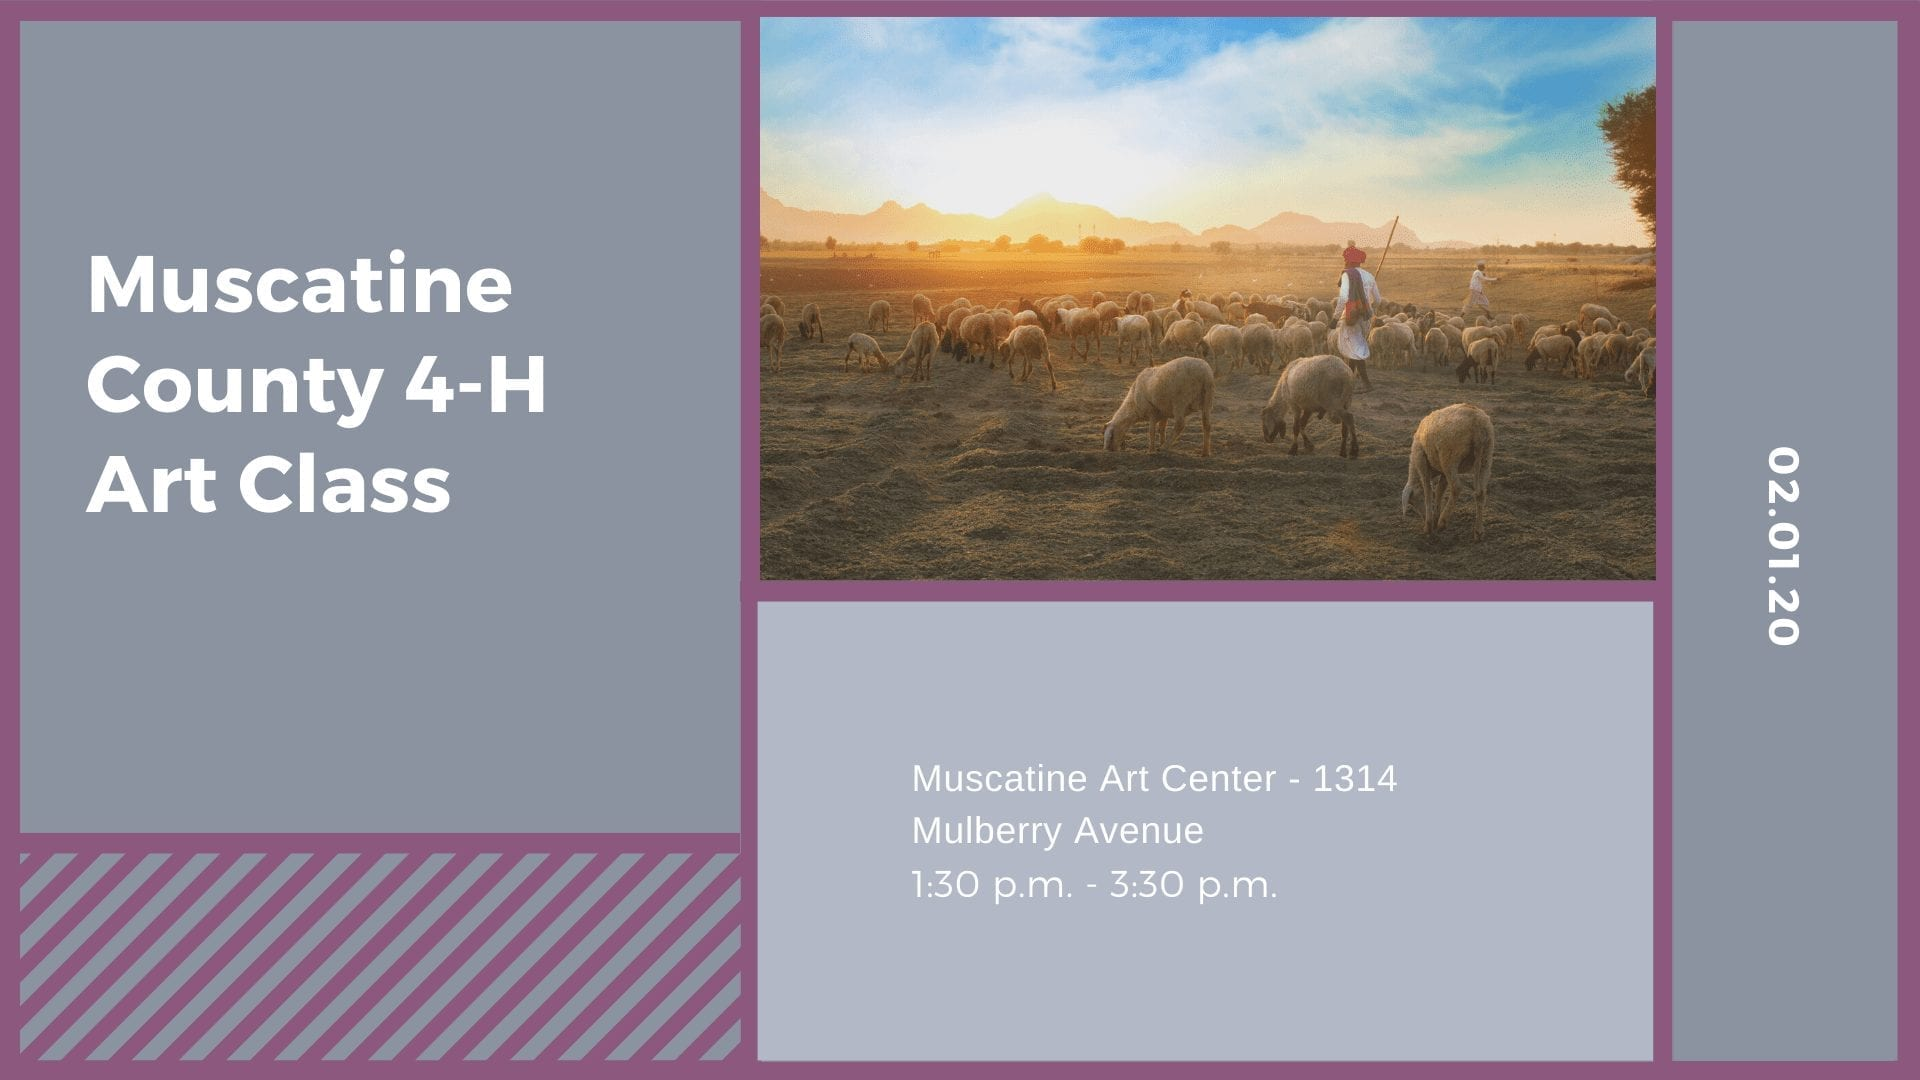 Muscatine County 4-H Art Class